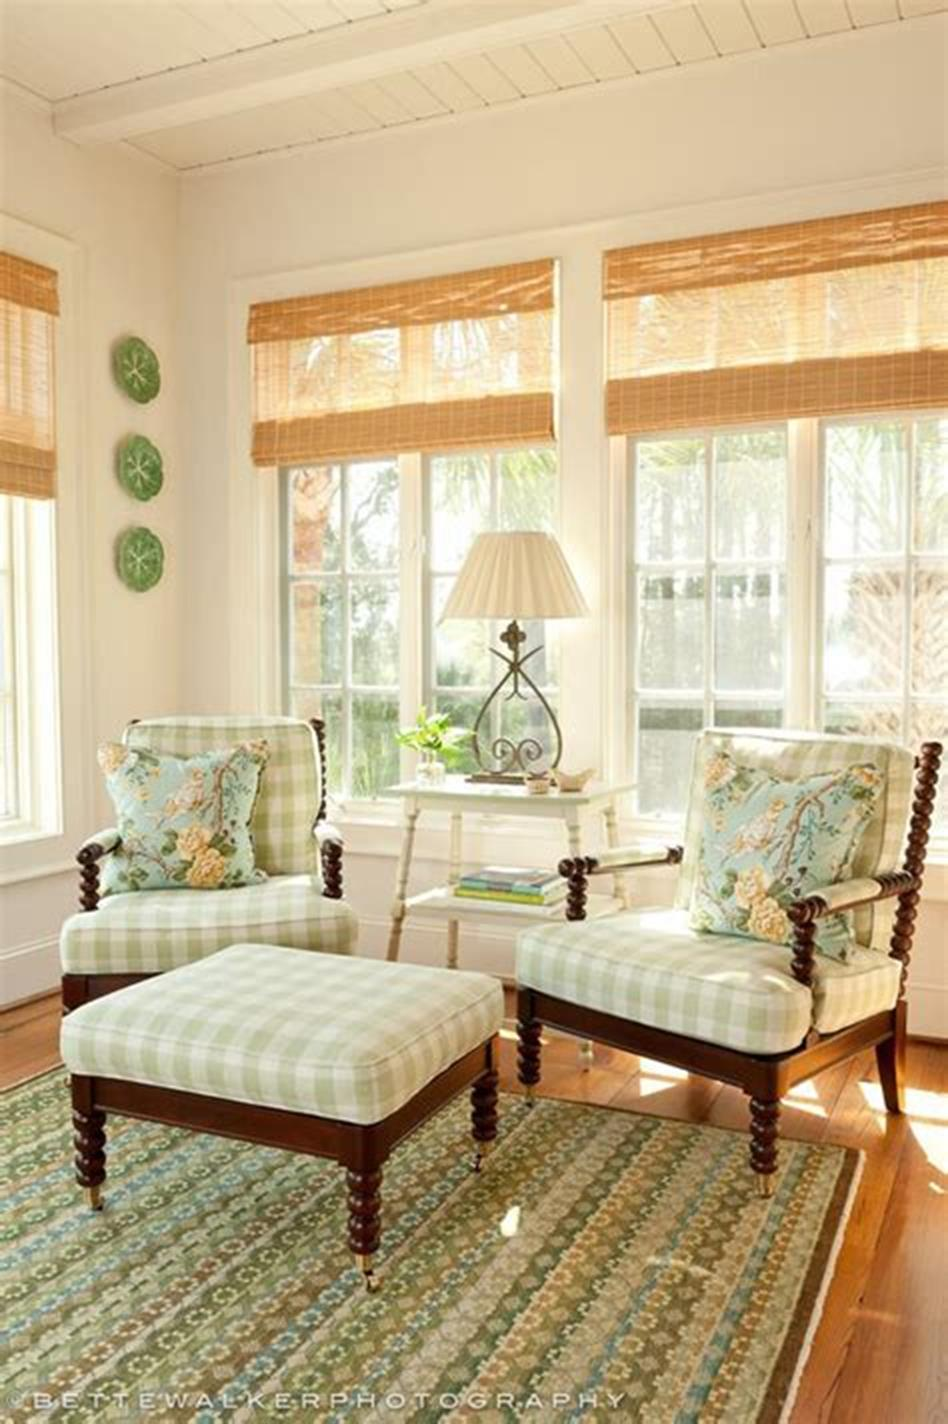 50 Most Popular Affordable Sunroom Design Ideas on a Budget 32